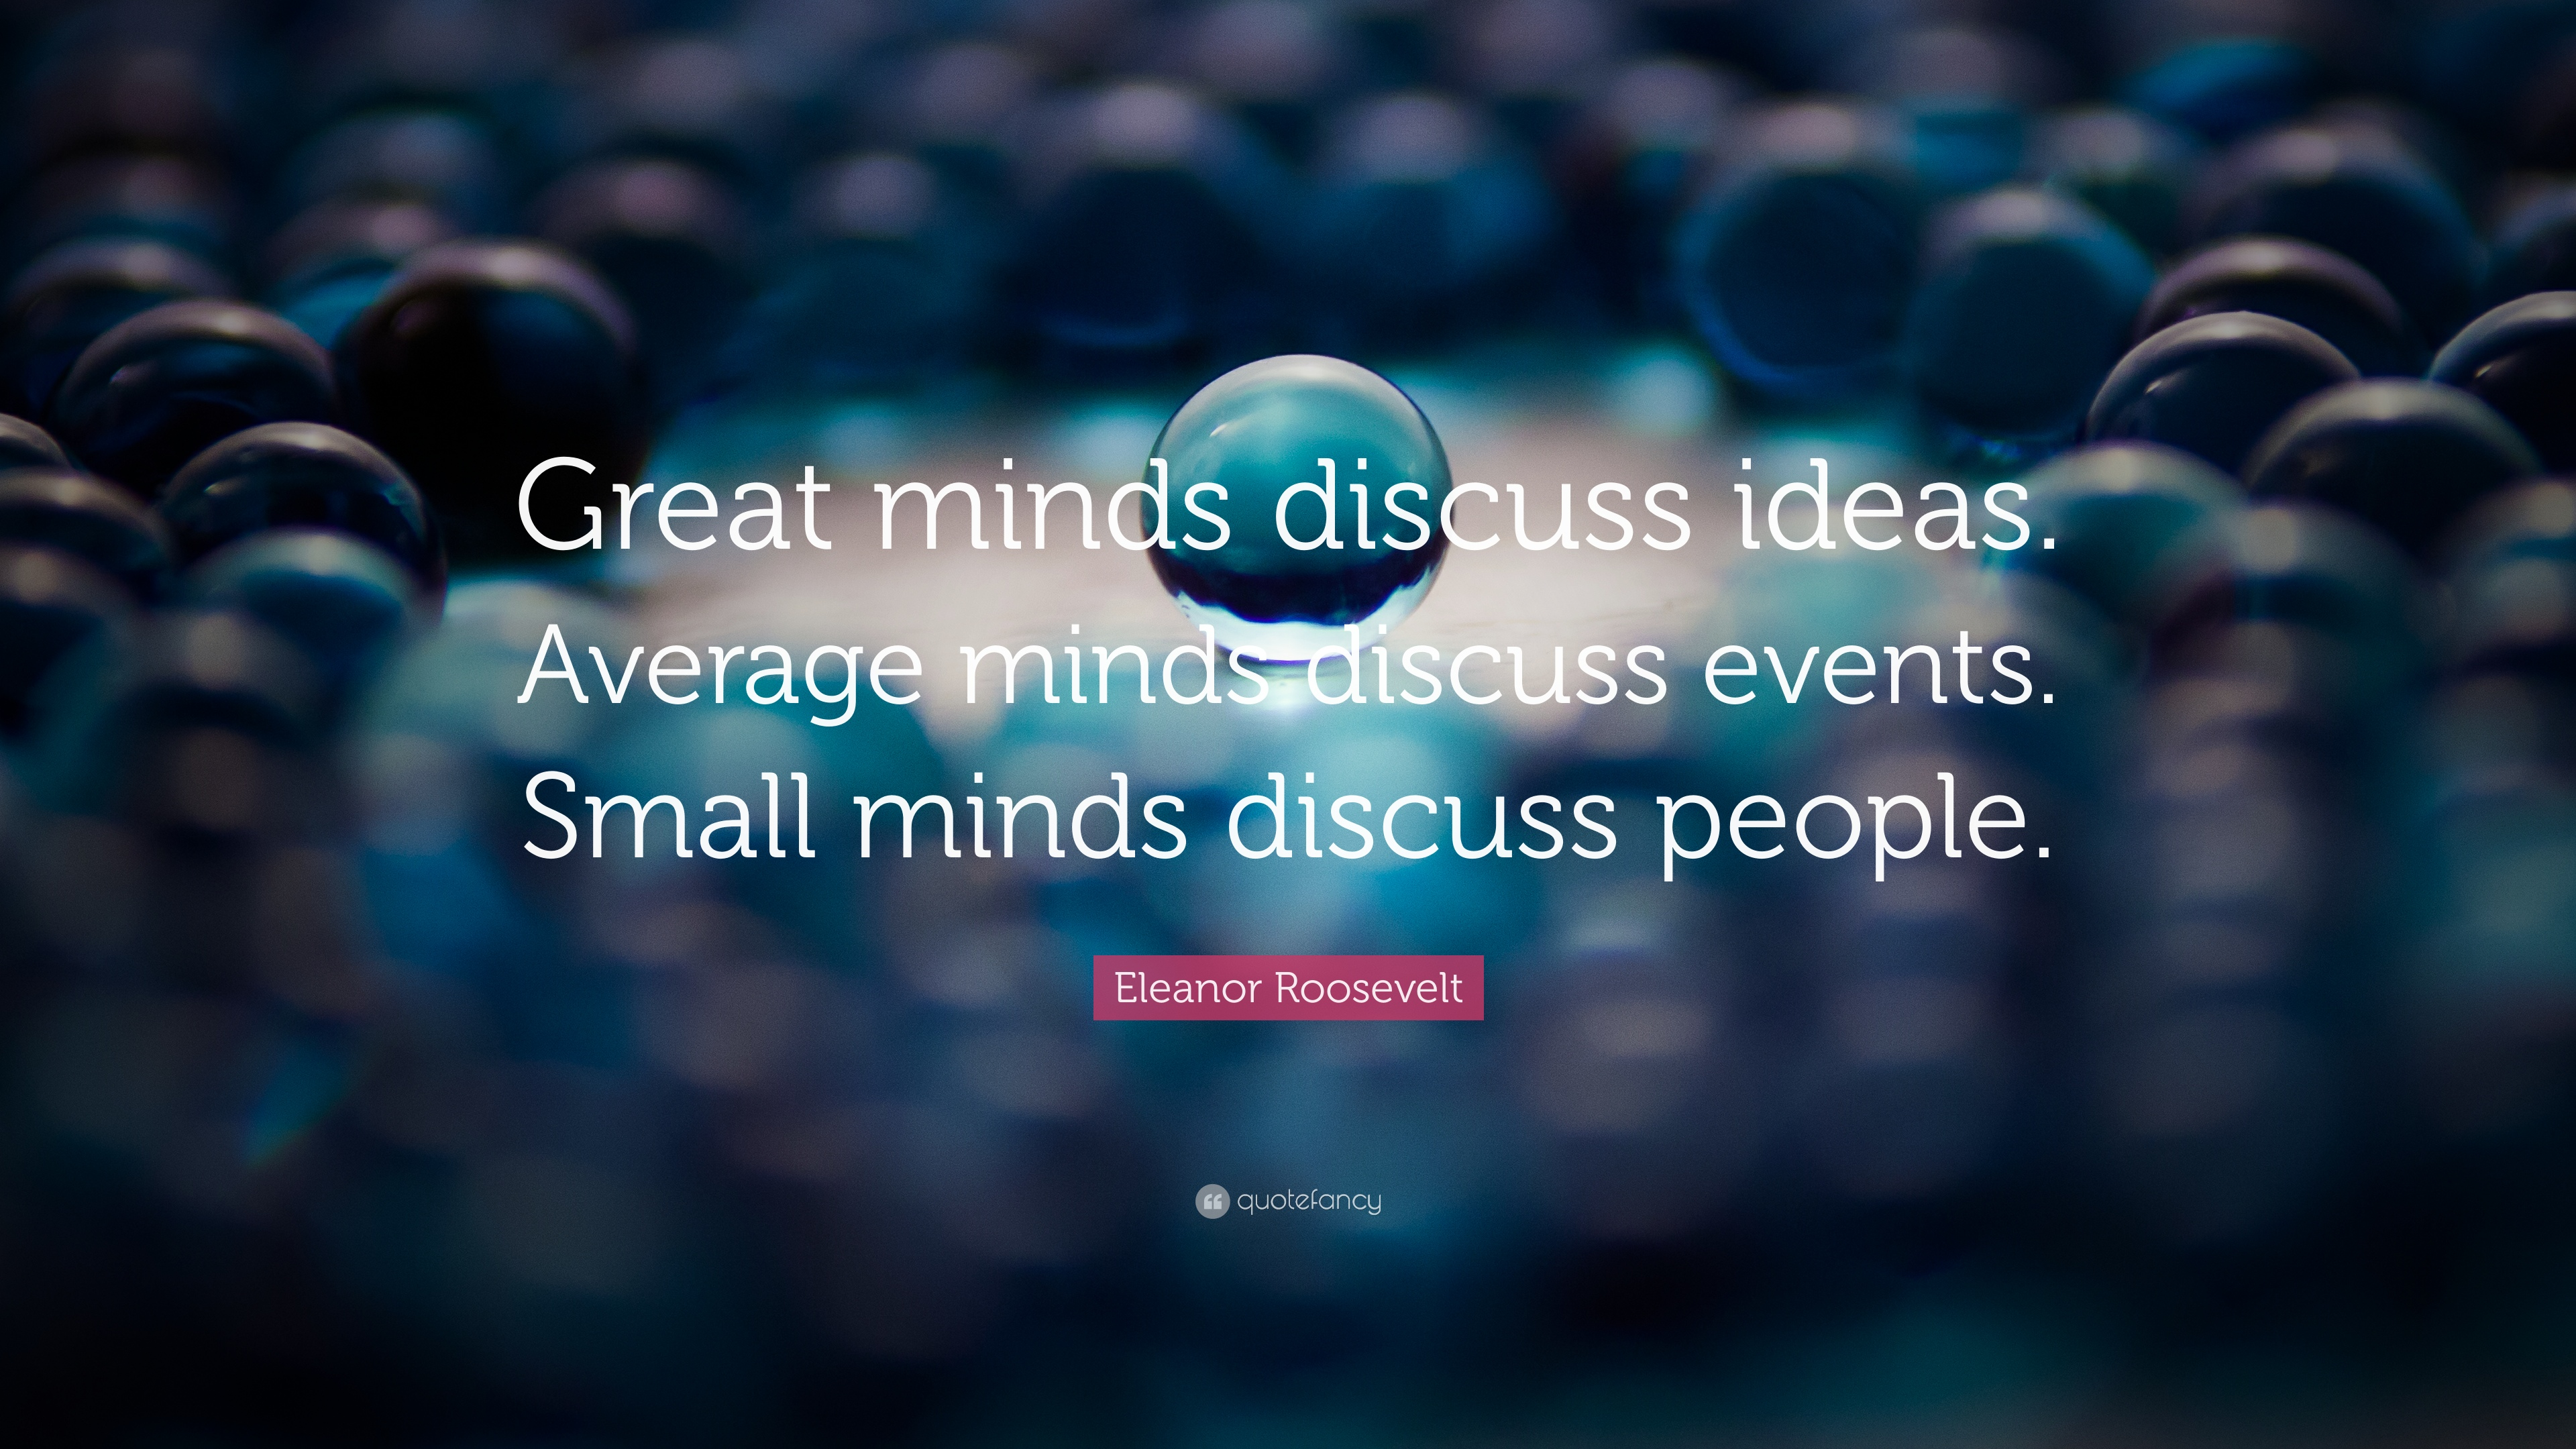 Eleanor Roosevelt Quote Wallpaper Eleanor Roosevelt Quote Great Minds Discuss Ideas